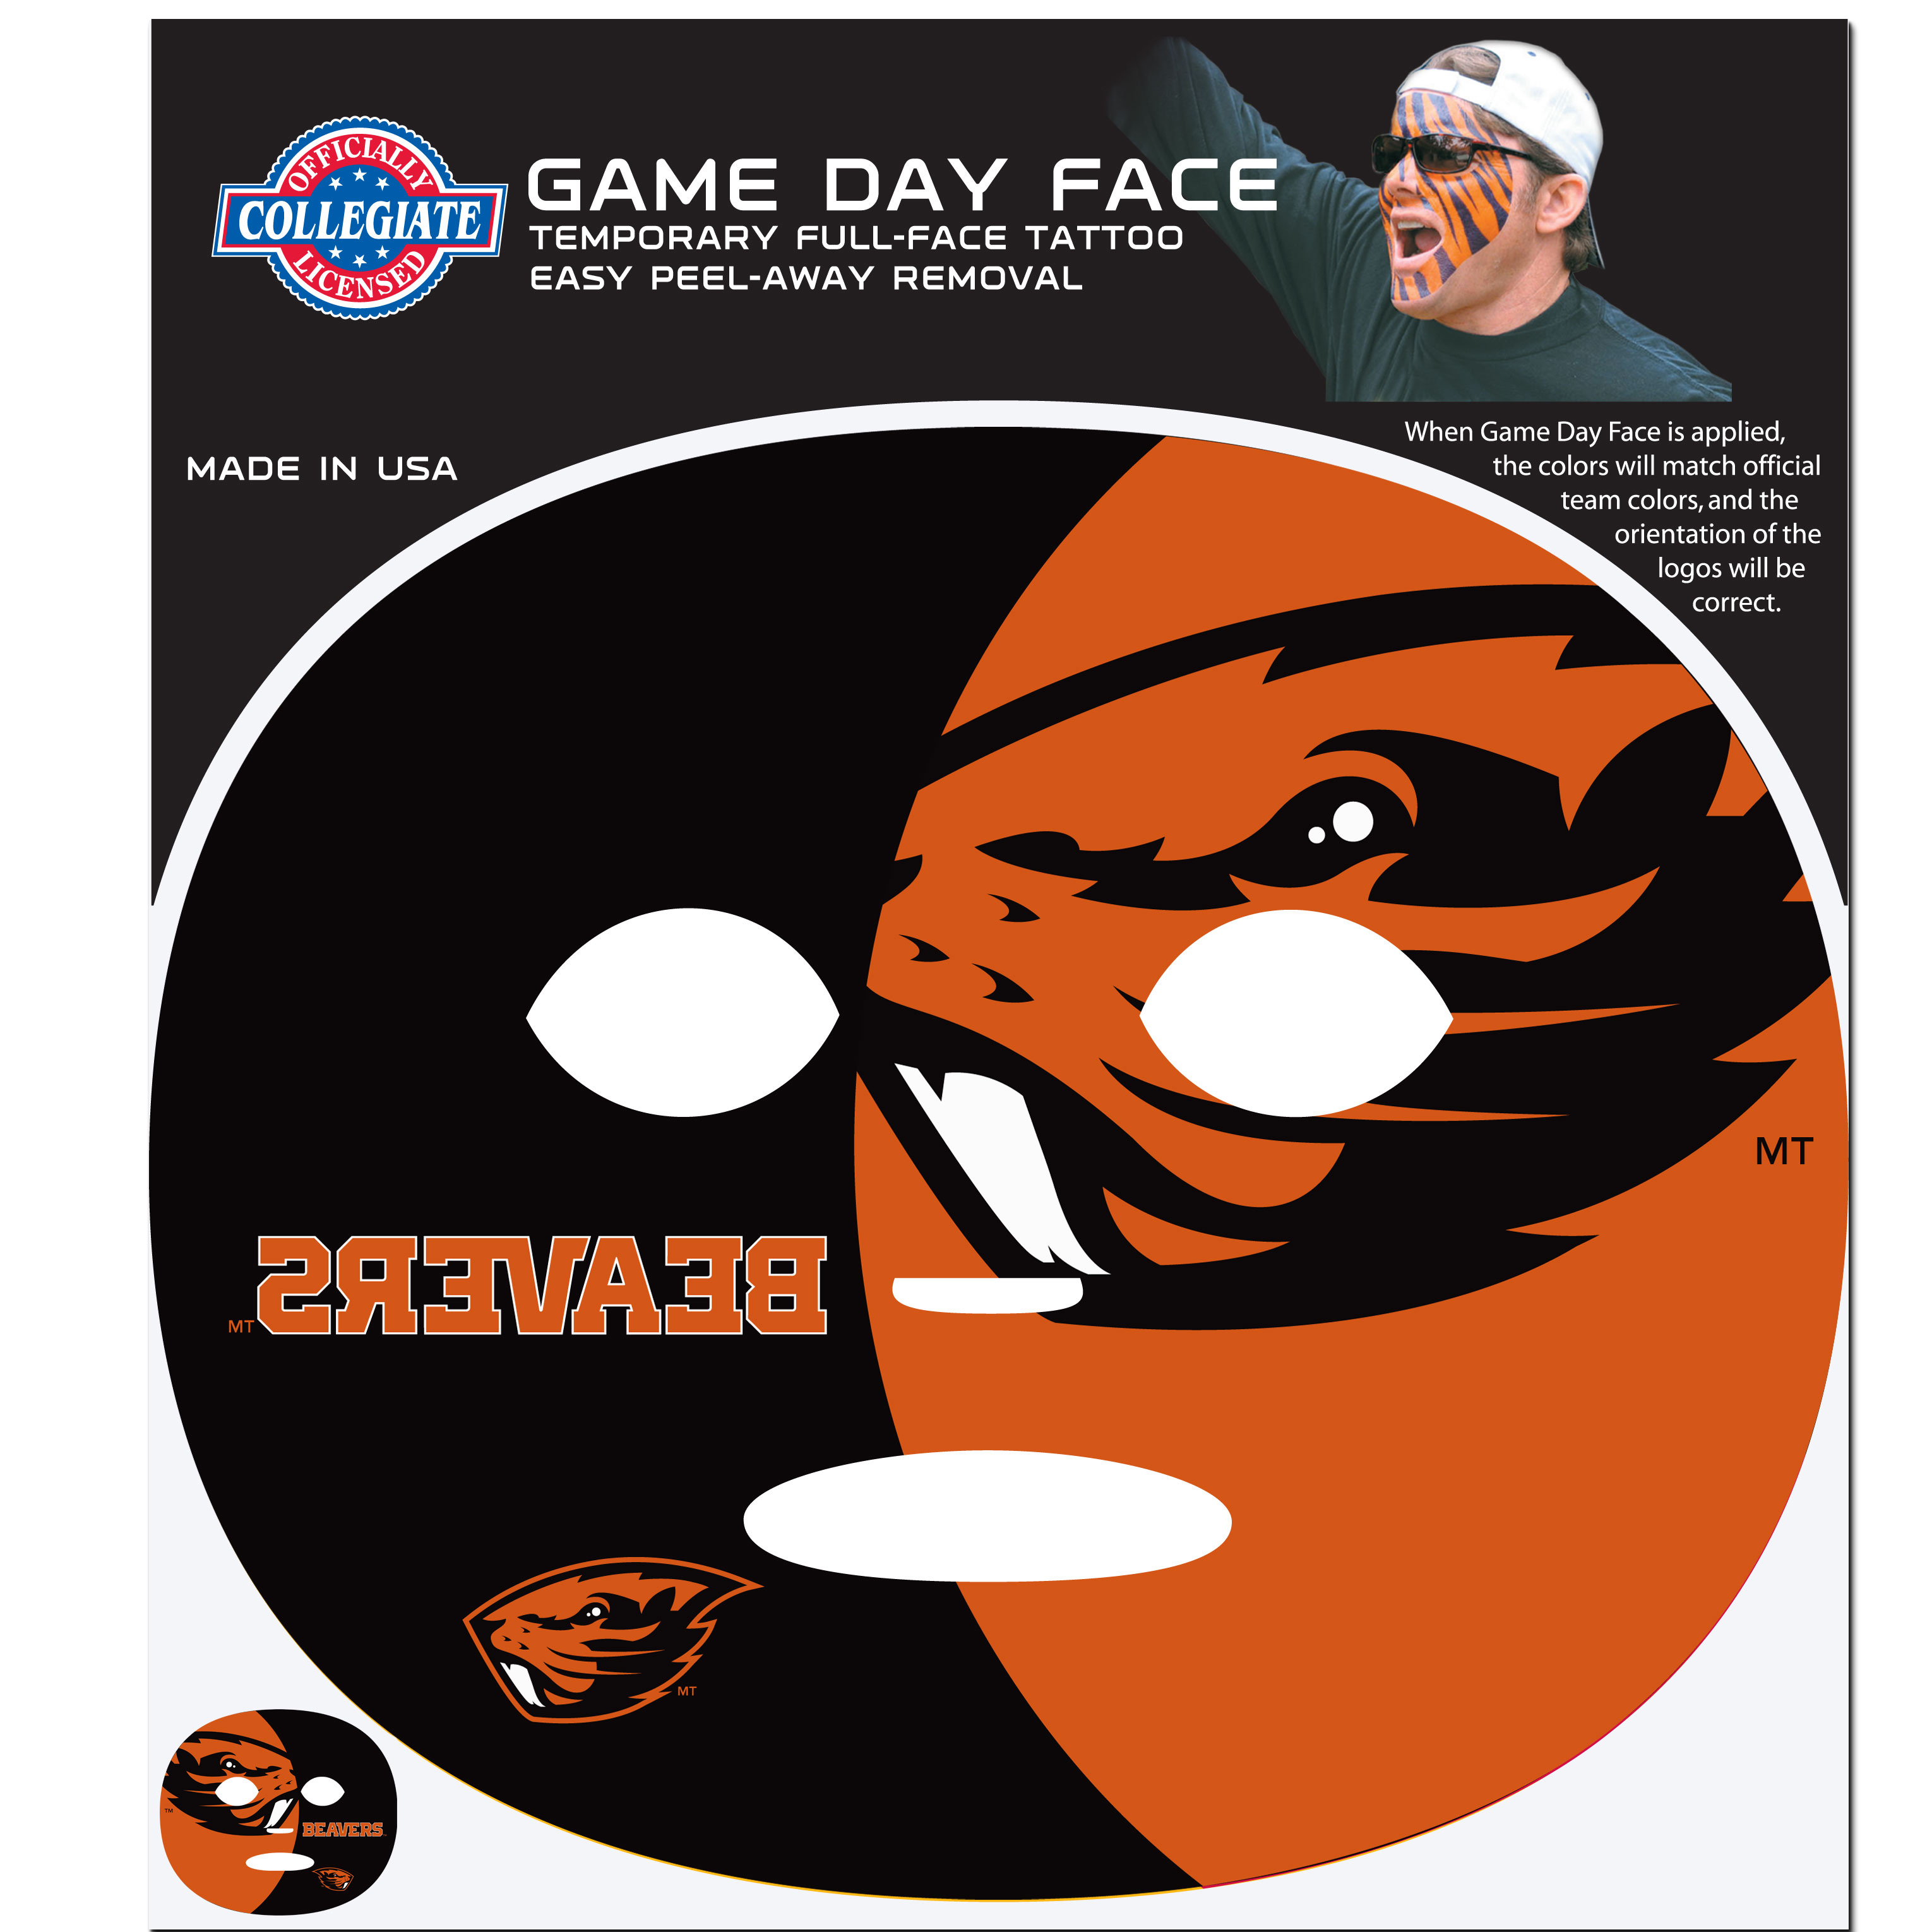 Oregon St. Beavers Game Face Temporary Tattoo - No better way to show your Oregon St. Beavers pride than by painting your face. Siskiyou's Game Day Face Temporary Tattoo isn't your typical face paint. It is a water based application that doesn't smudge, smear or sweat off  while you're wearing it and easily peels off after you're done celebrating your team's big Win! The temporary tattoo is large enough to trim down to fit your face.  Our Game Day Face Temporary Tattoo's are fun for fans of all ages. You may have seen our product before,  these are the same Temporary Face Tattoos as pitched on ABC's Shark Tank.